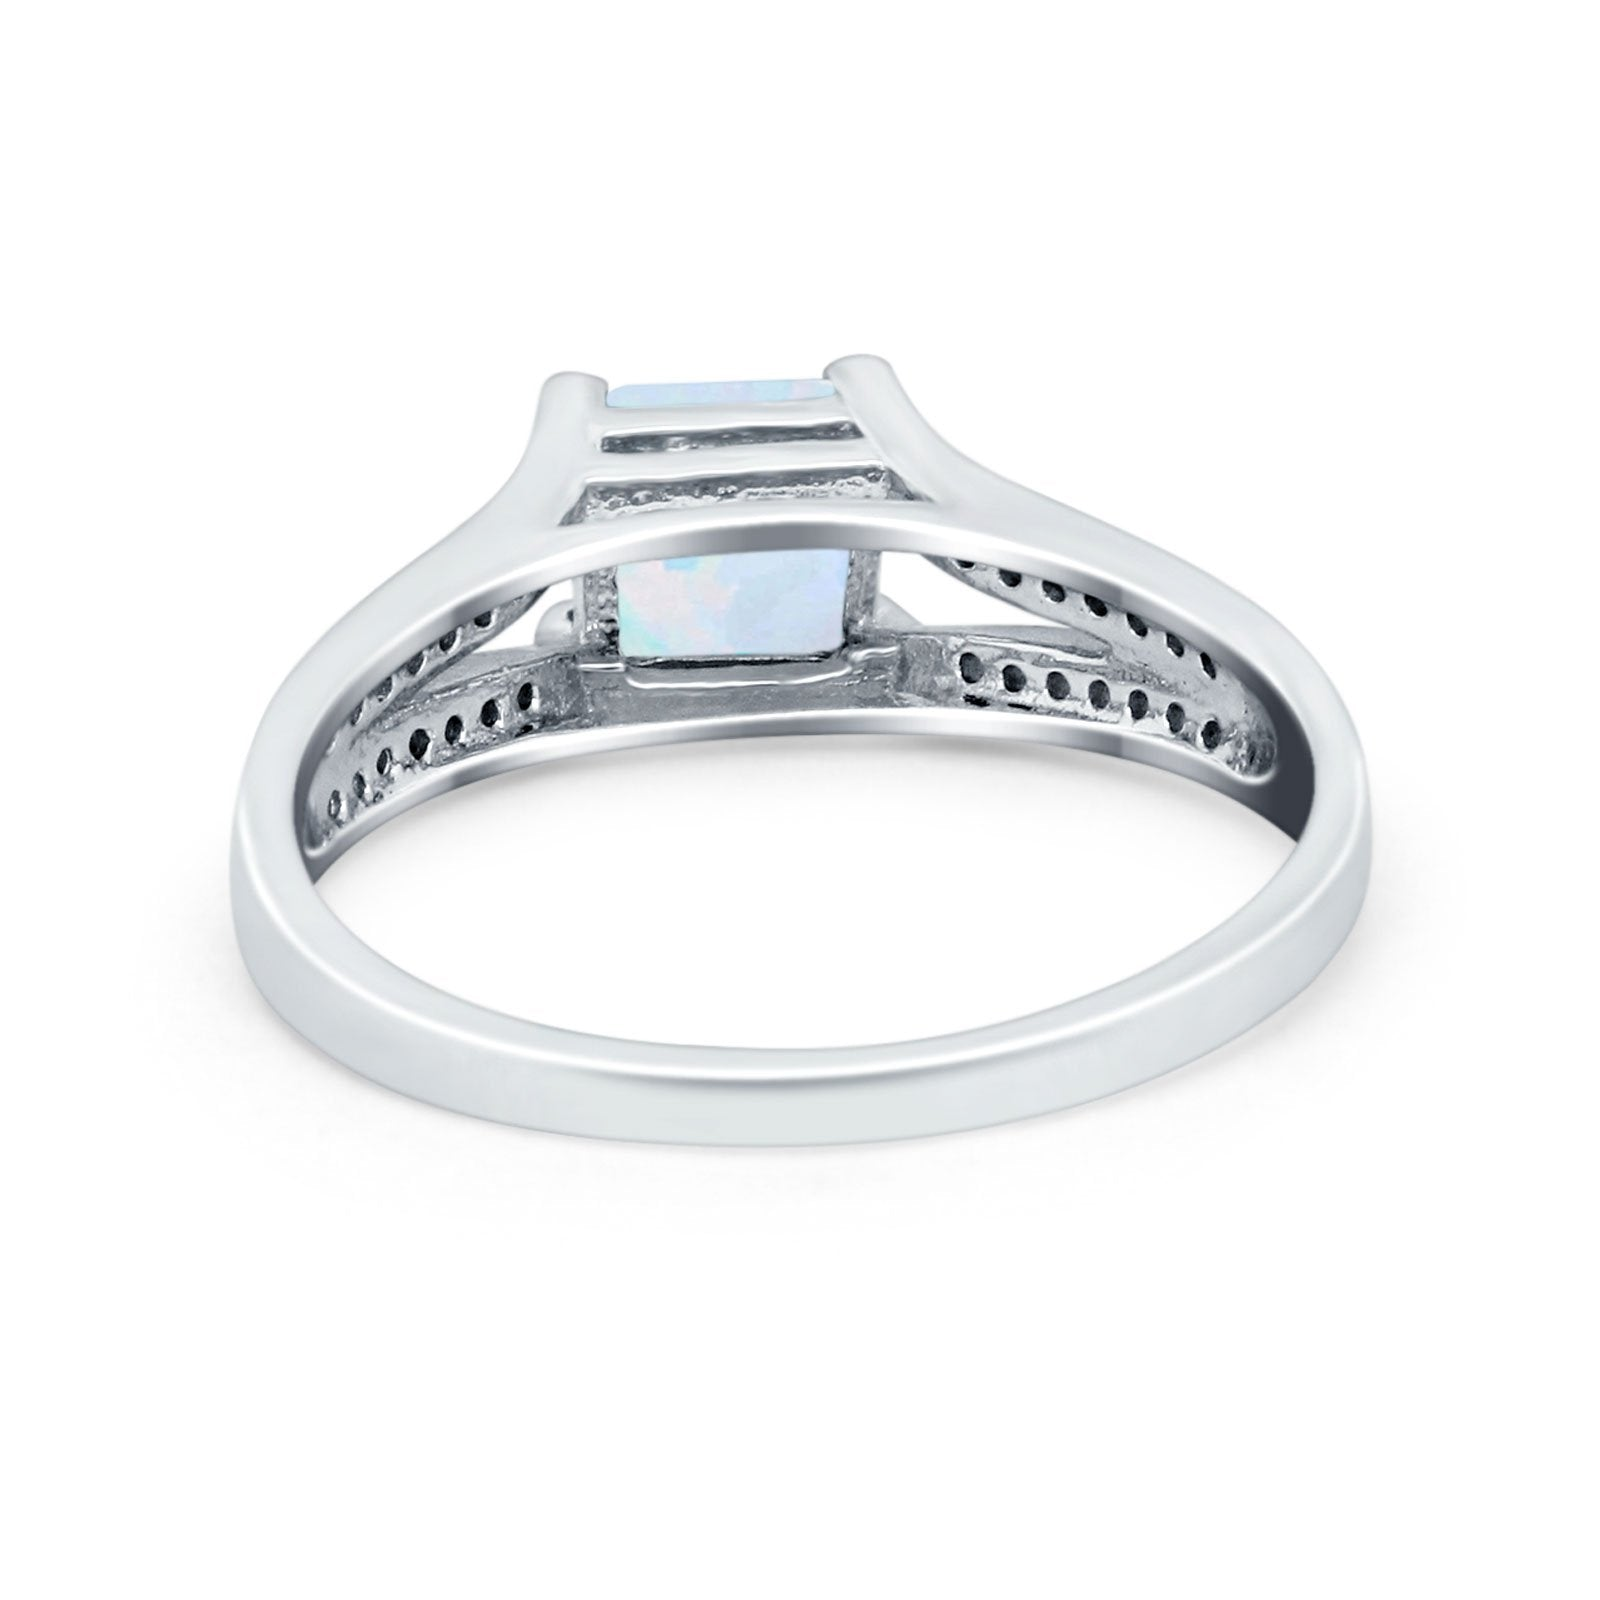 Princess Cut Wedding Ring Simulated Cubic Zirconia 925 Sterling Silver